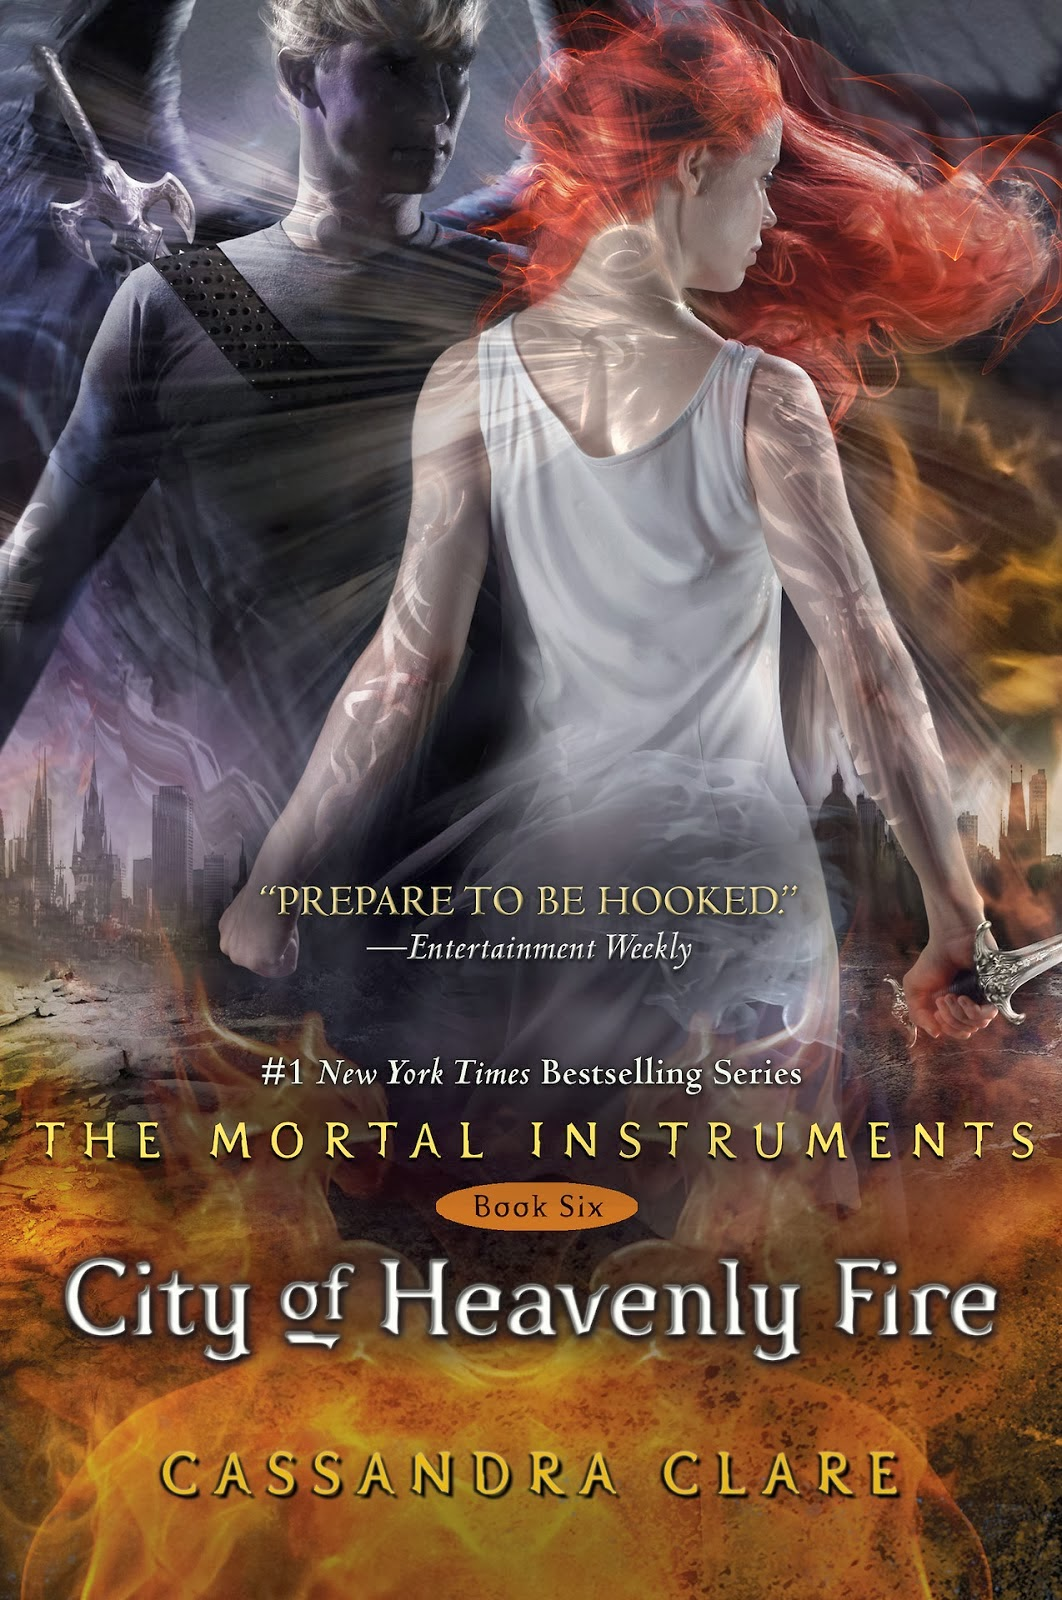 http://books.simonandschuster.com/City-of-Heavenly-Fire/Cassandra-Clare/The-Mortal-Instruments/9781442416895